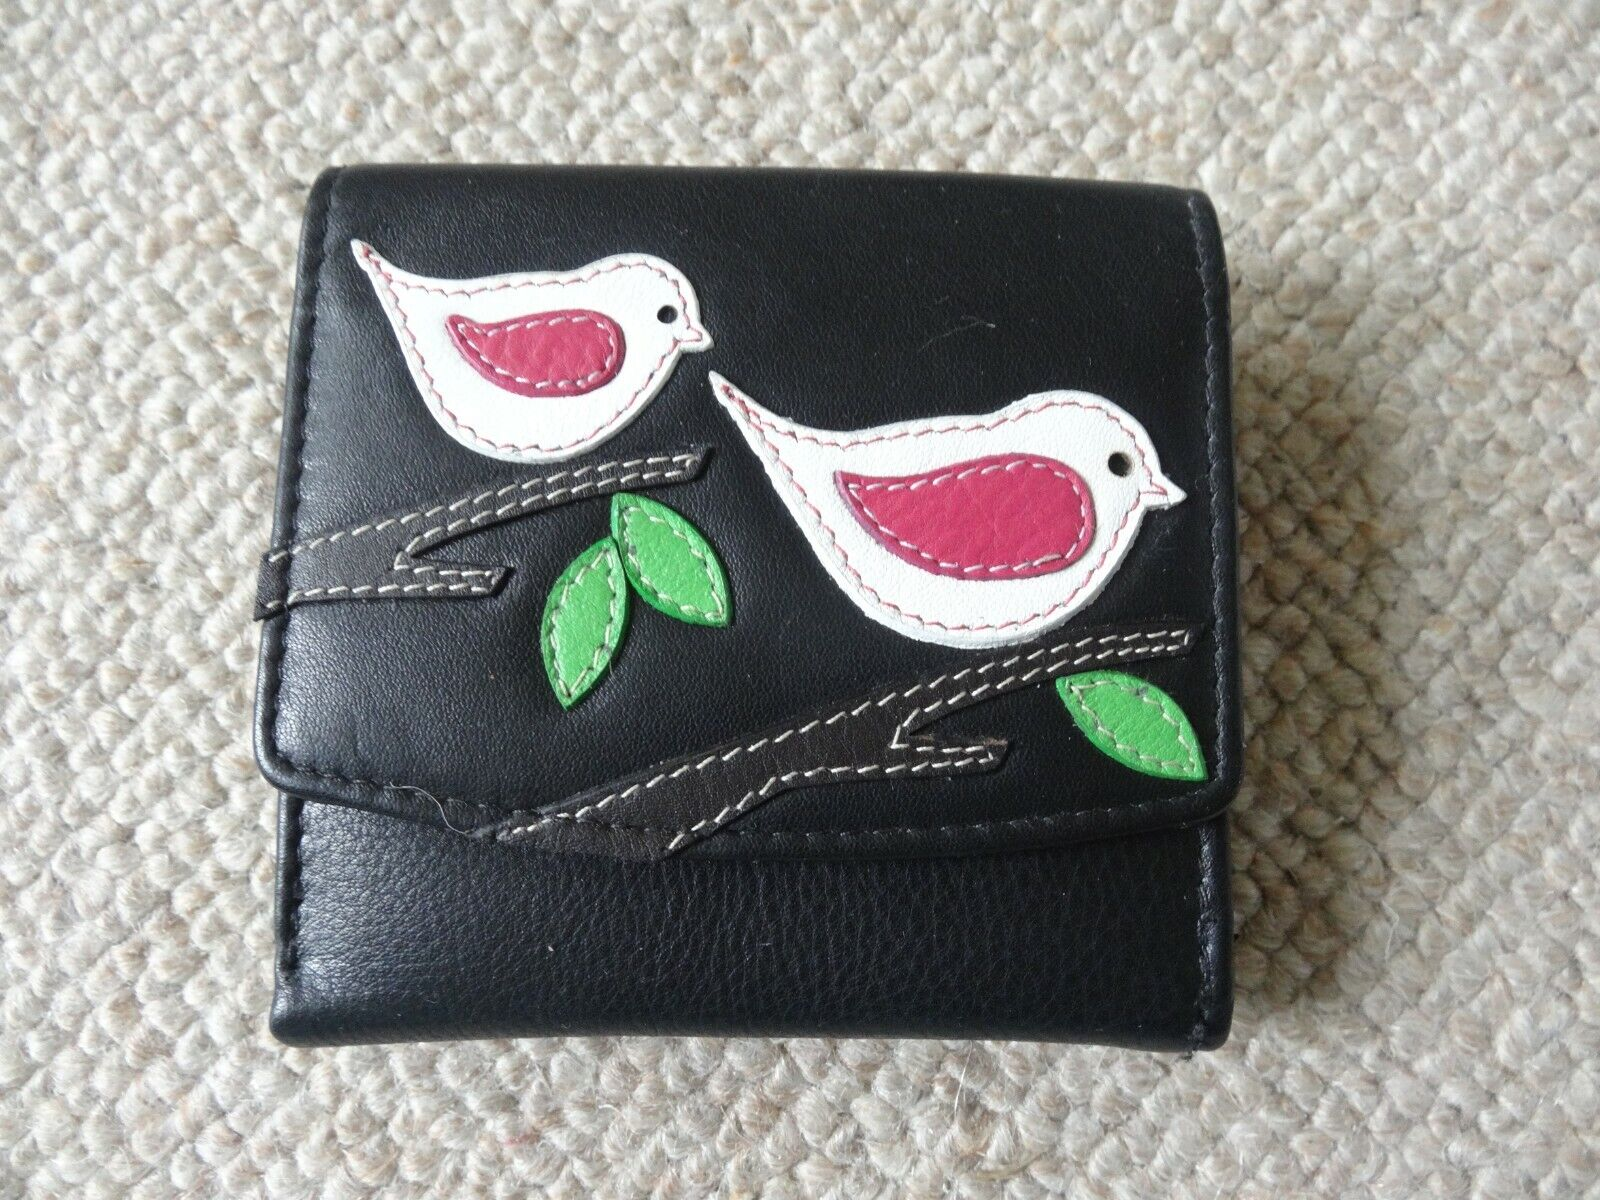 Mala Leather Ladies Compact Purse Wallet Willow Design with Stitched Bird Motifs